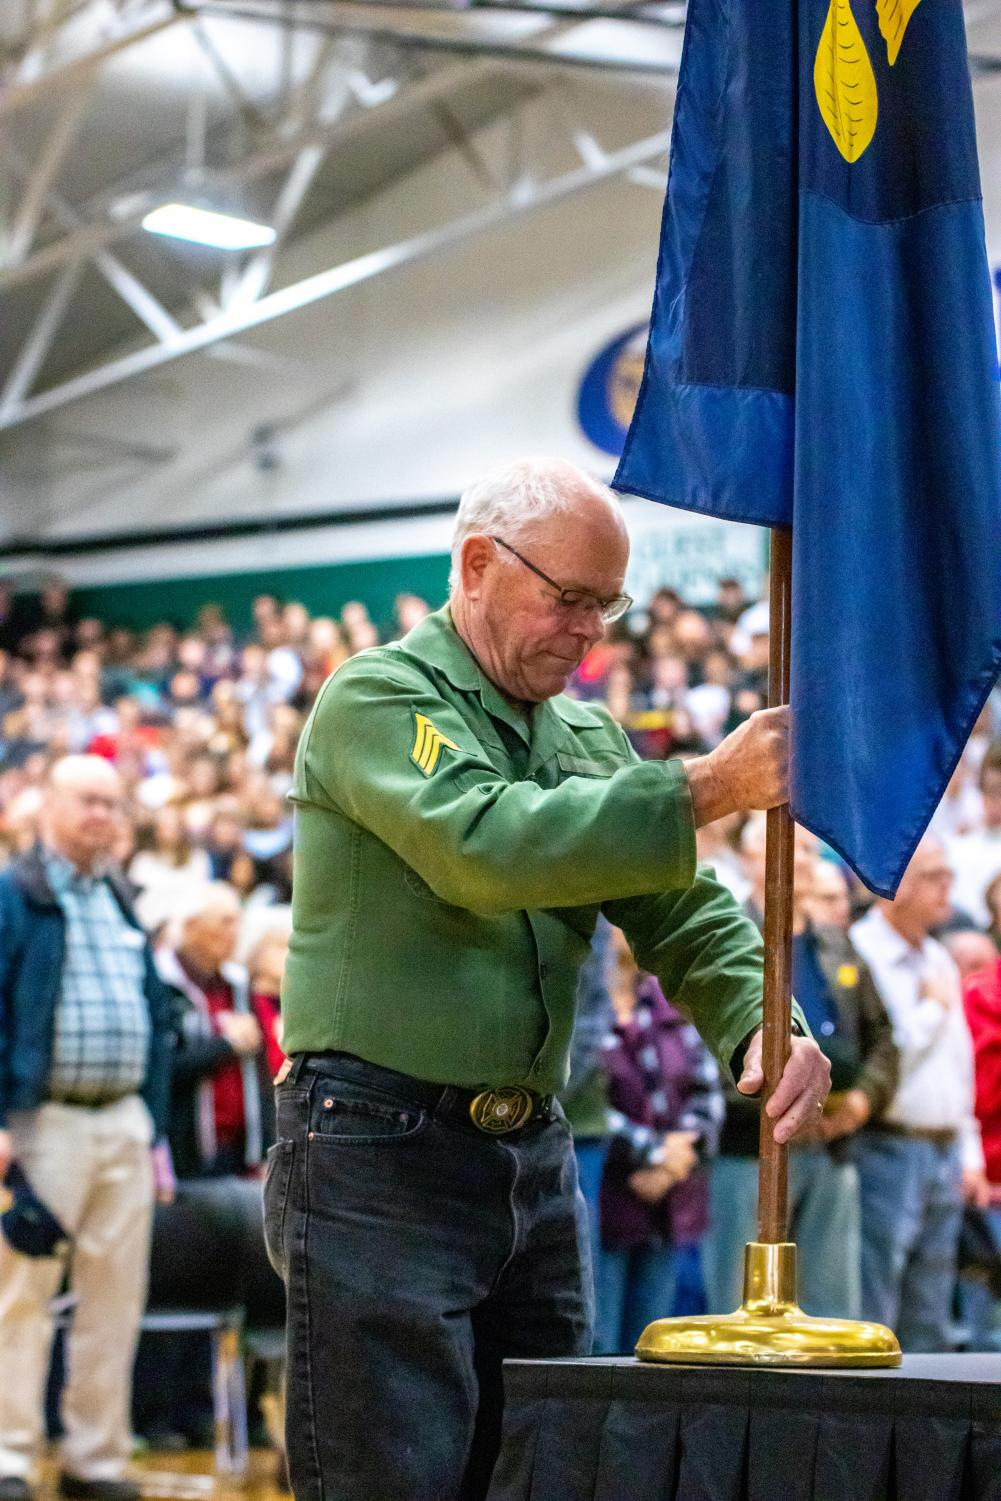 Mark Lueck helps Head Custodian Gus Jaramillo with the presentation of the colors and placing the Oregon state flag.